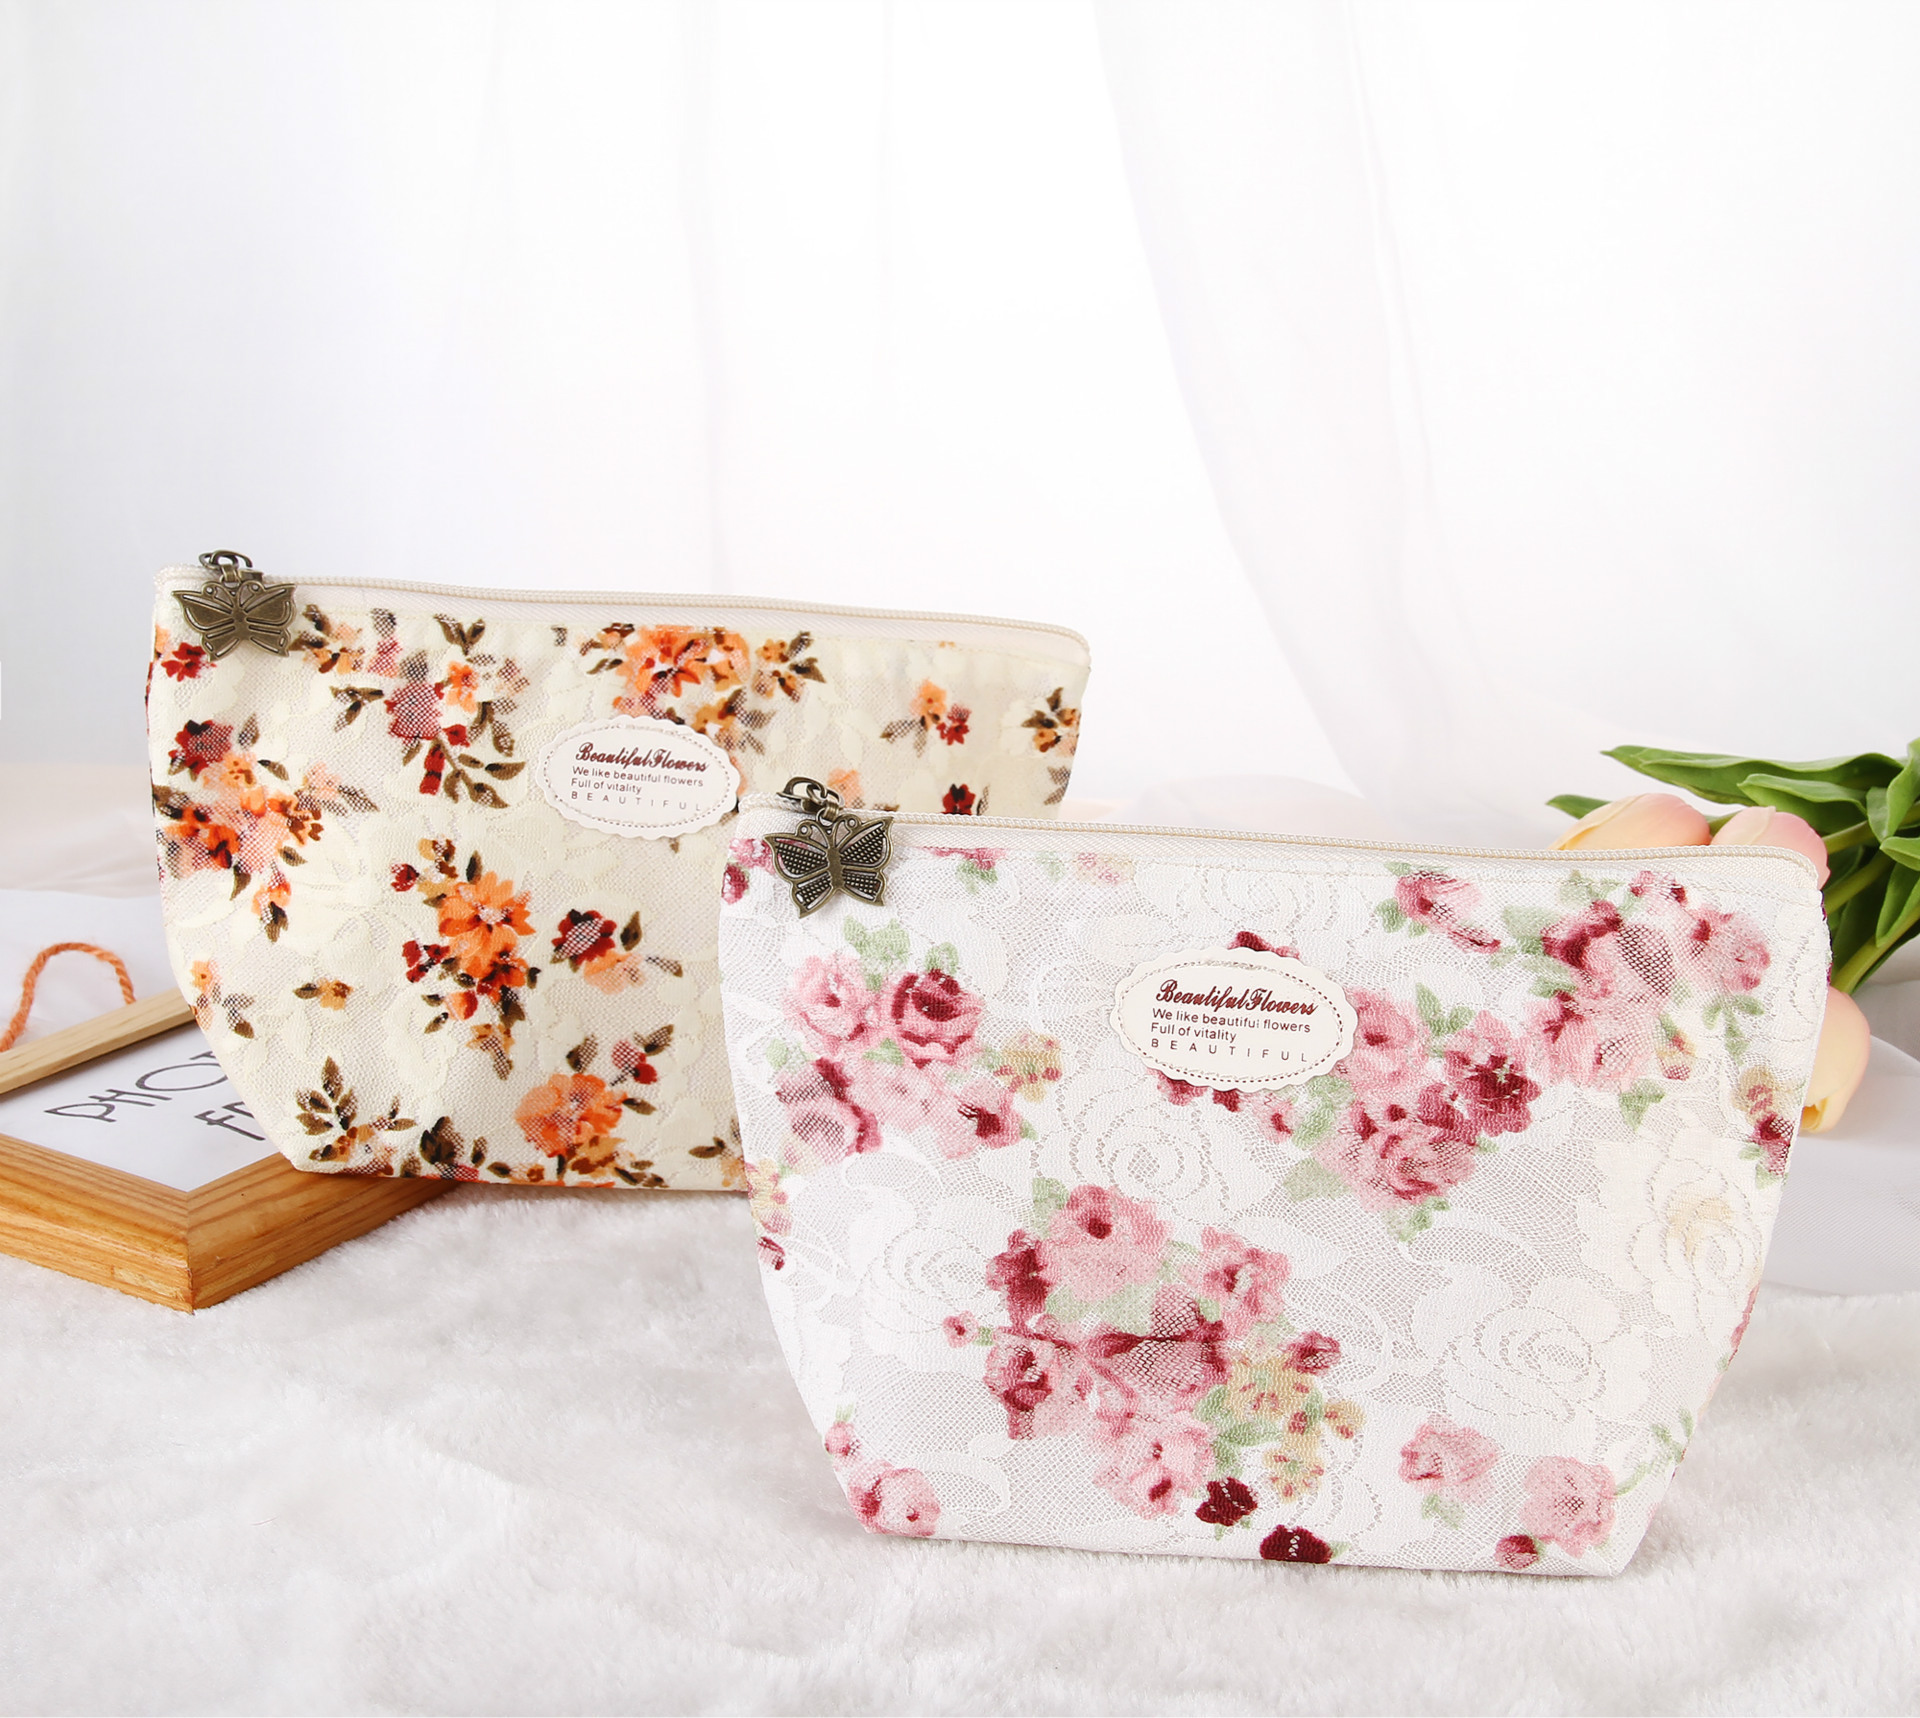 Fresh Summer New Lace Flower Women  Cosmetic bag Makeup bag Trave Zipper Case Ladies Organizer Toiletry bag kits Wash pouch ts5v330